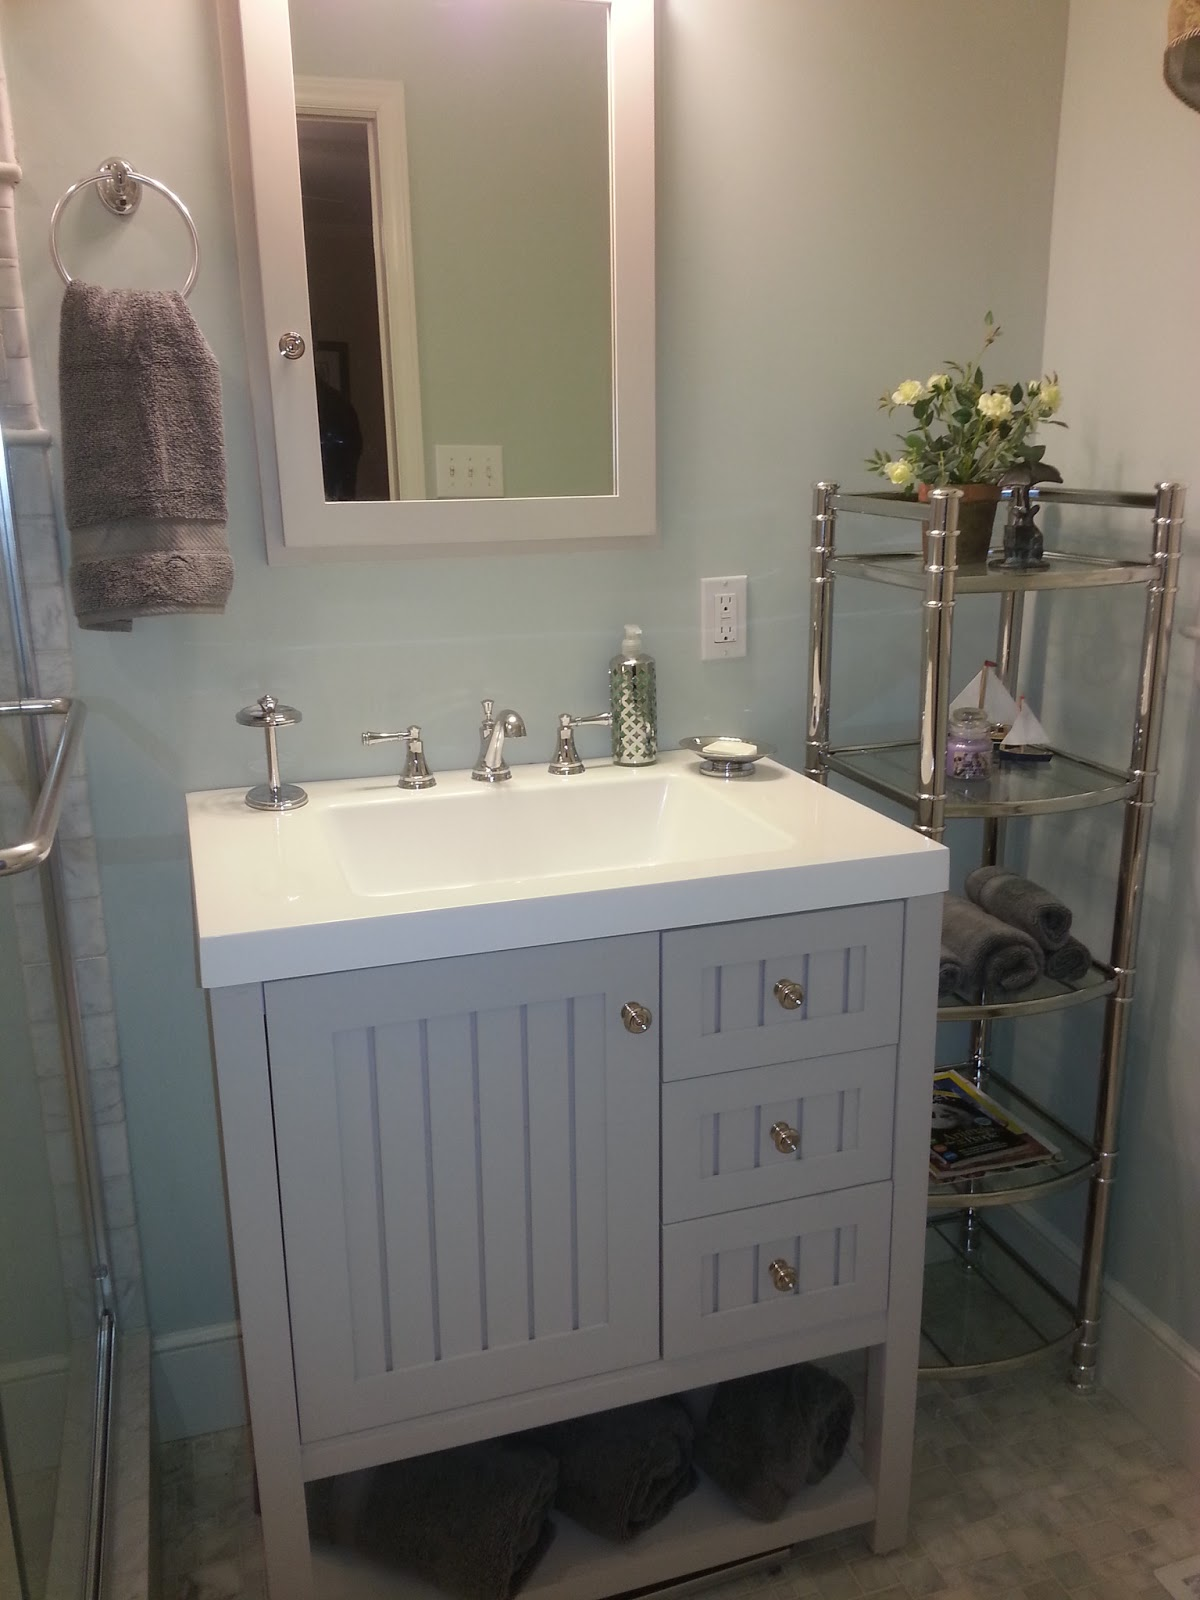 Decor You Adore Wow Before And After A Tiny Bathroom